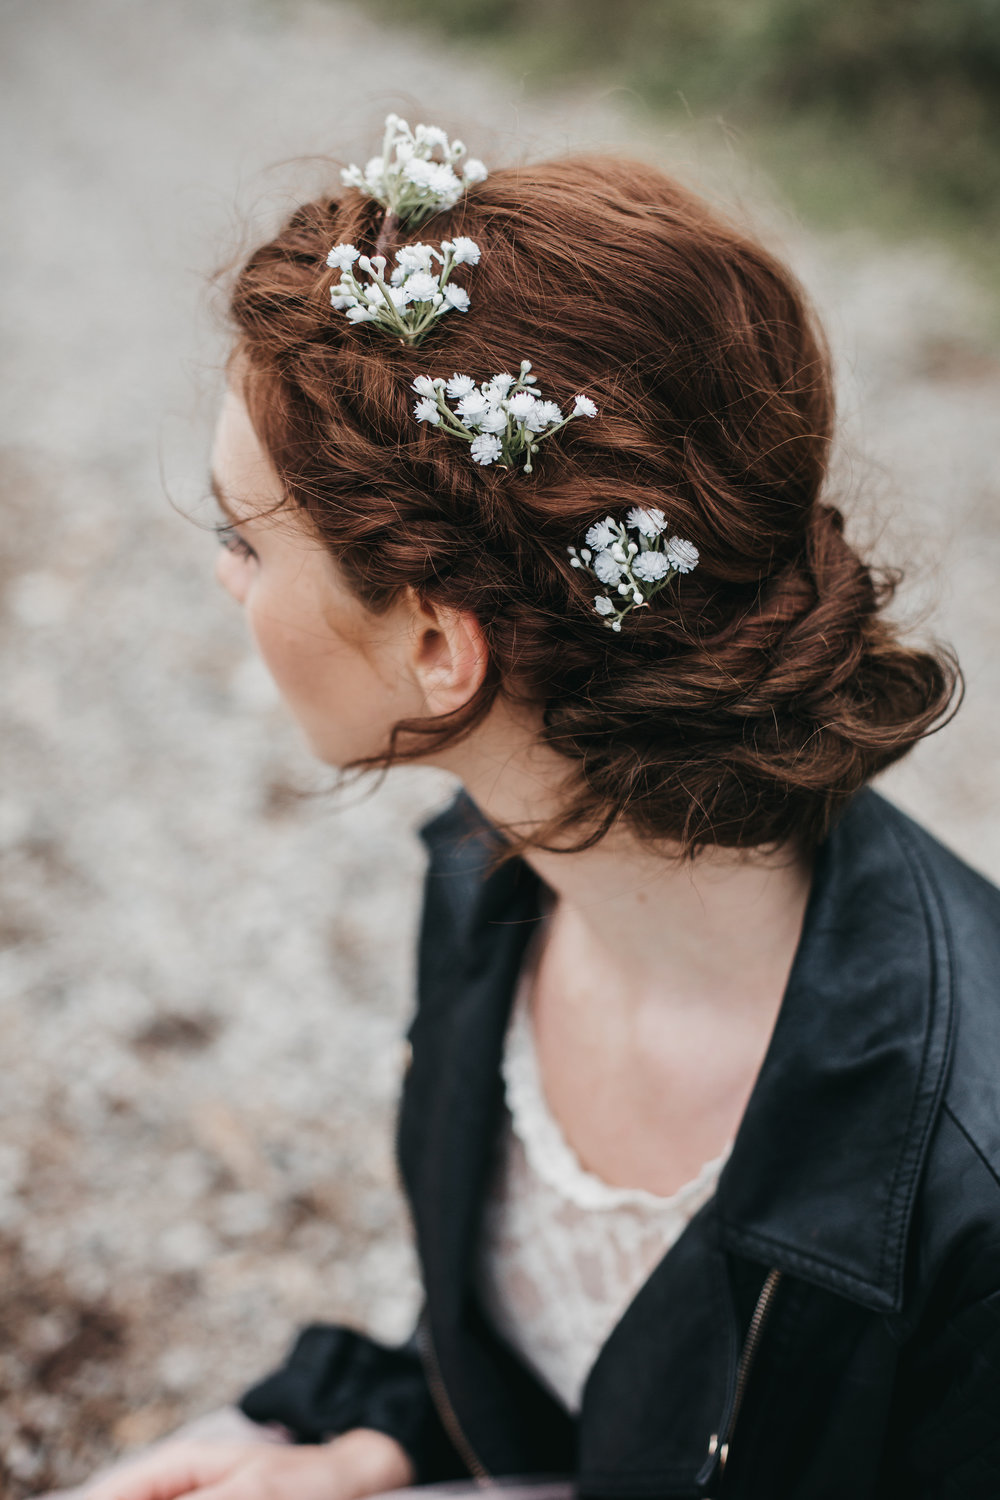 Tame those locks - Or don't and just add a gorgeous embellishment